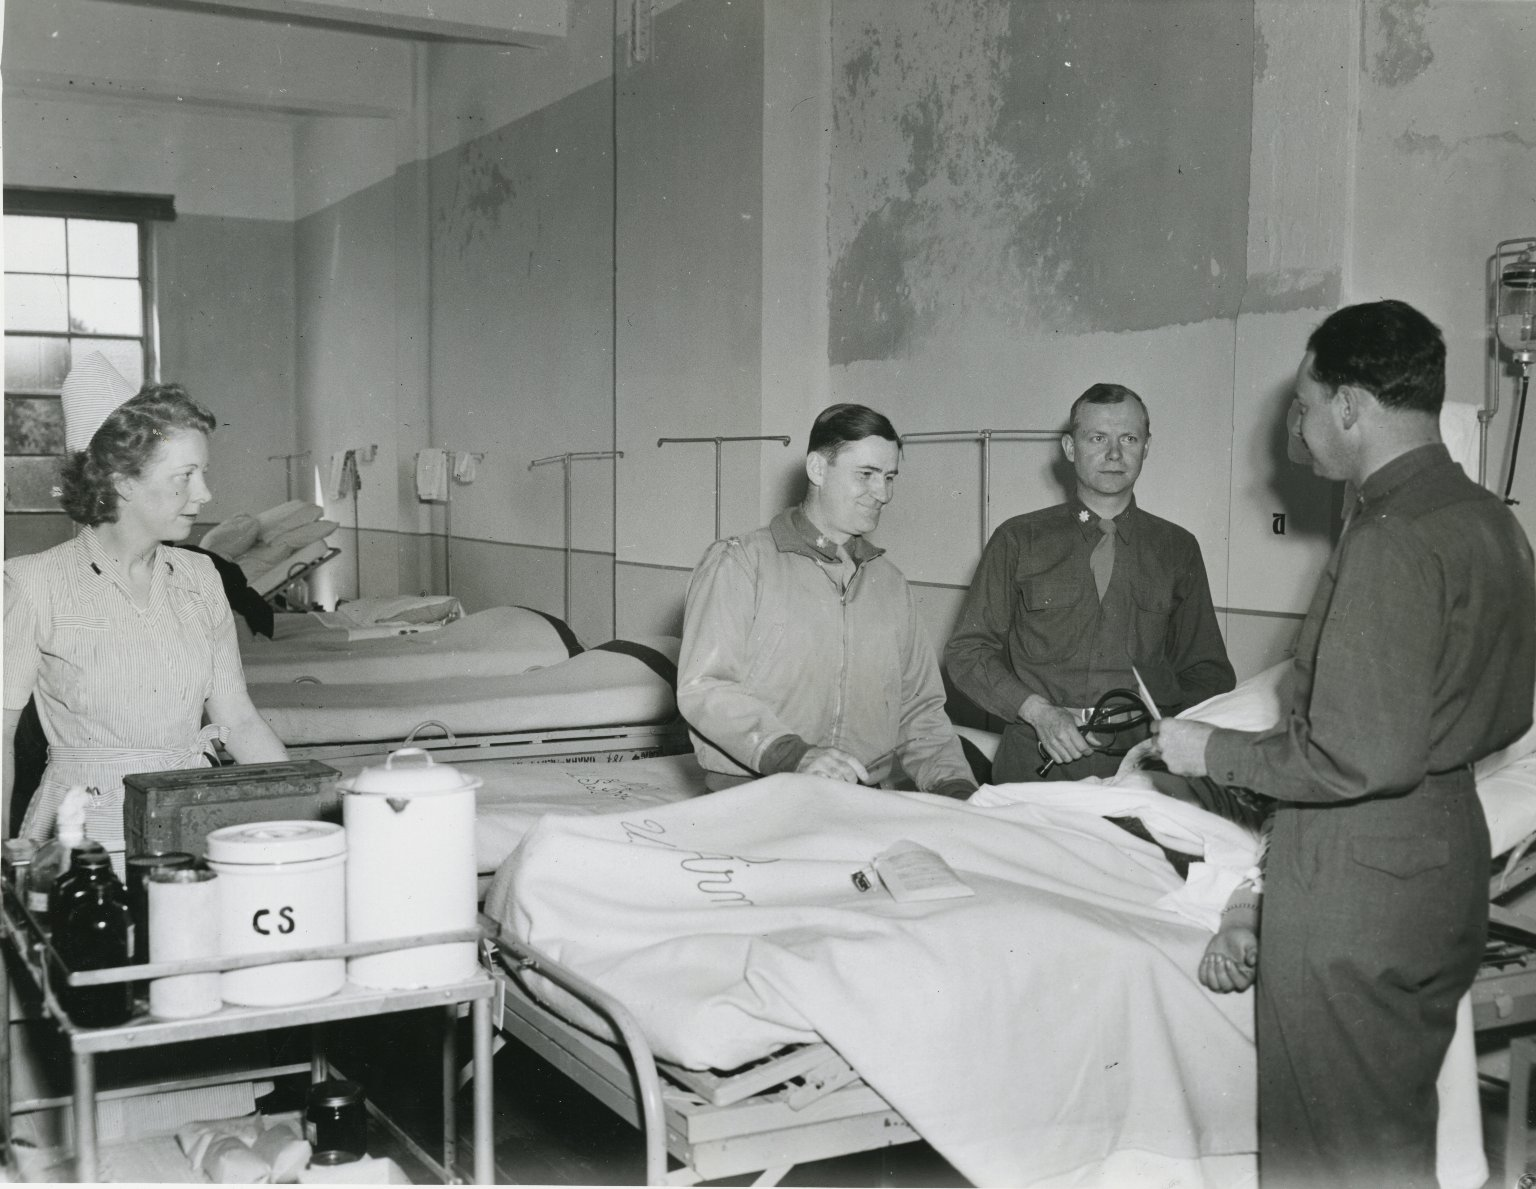 Doctors and Nurse Checking on Patient in Hospital Ward